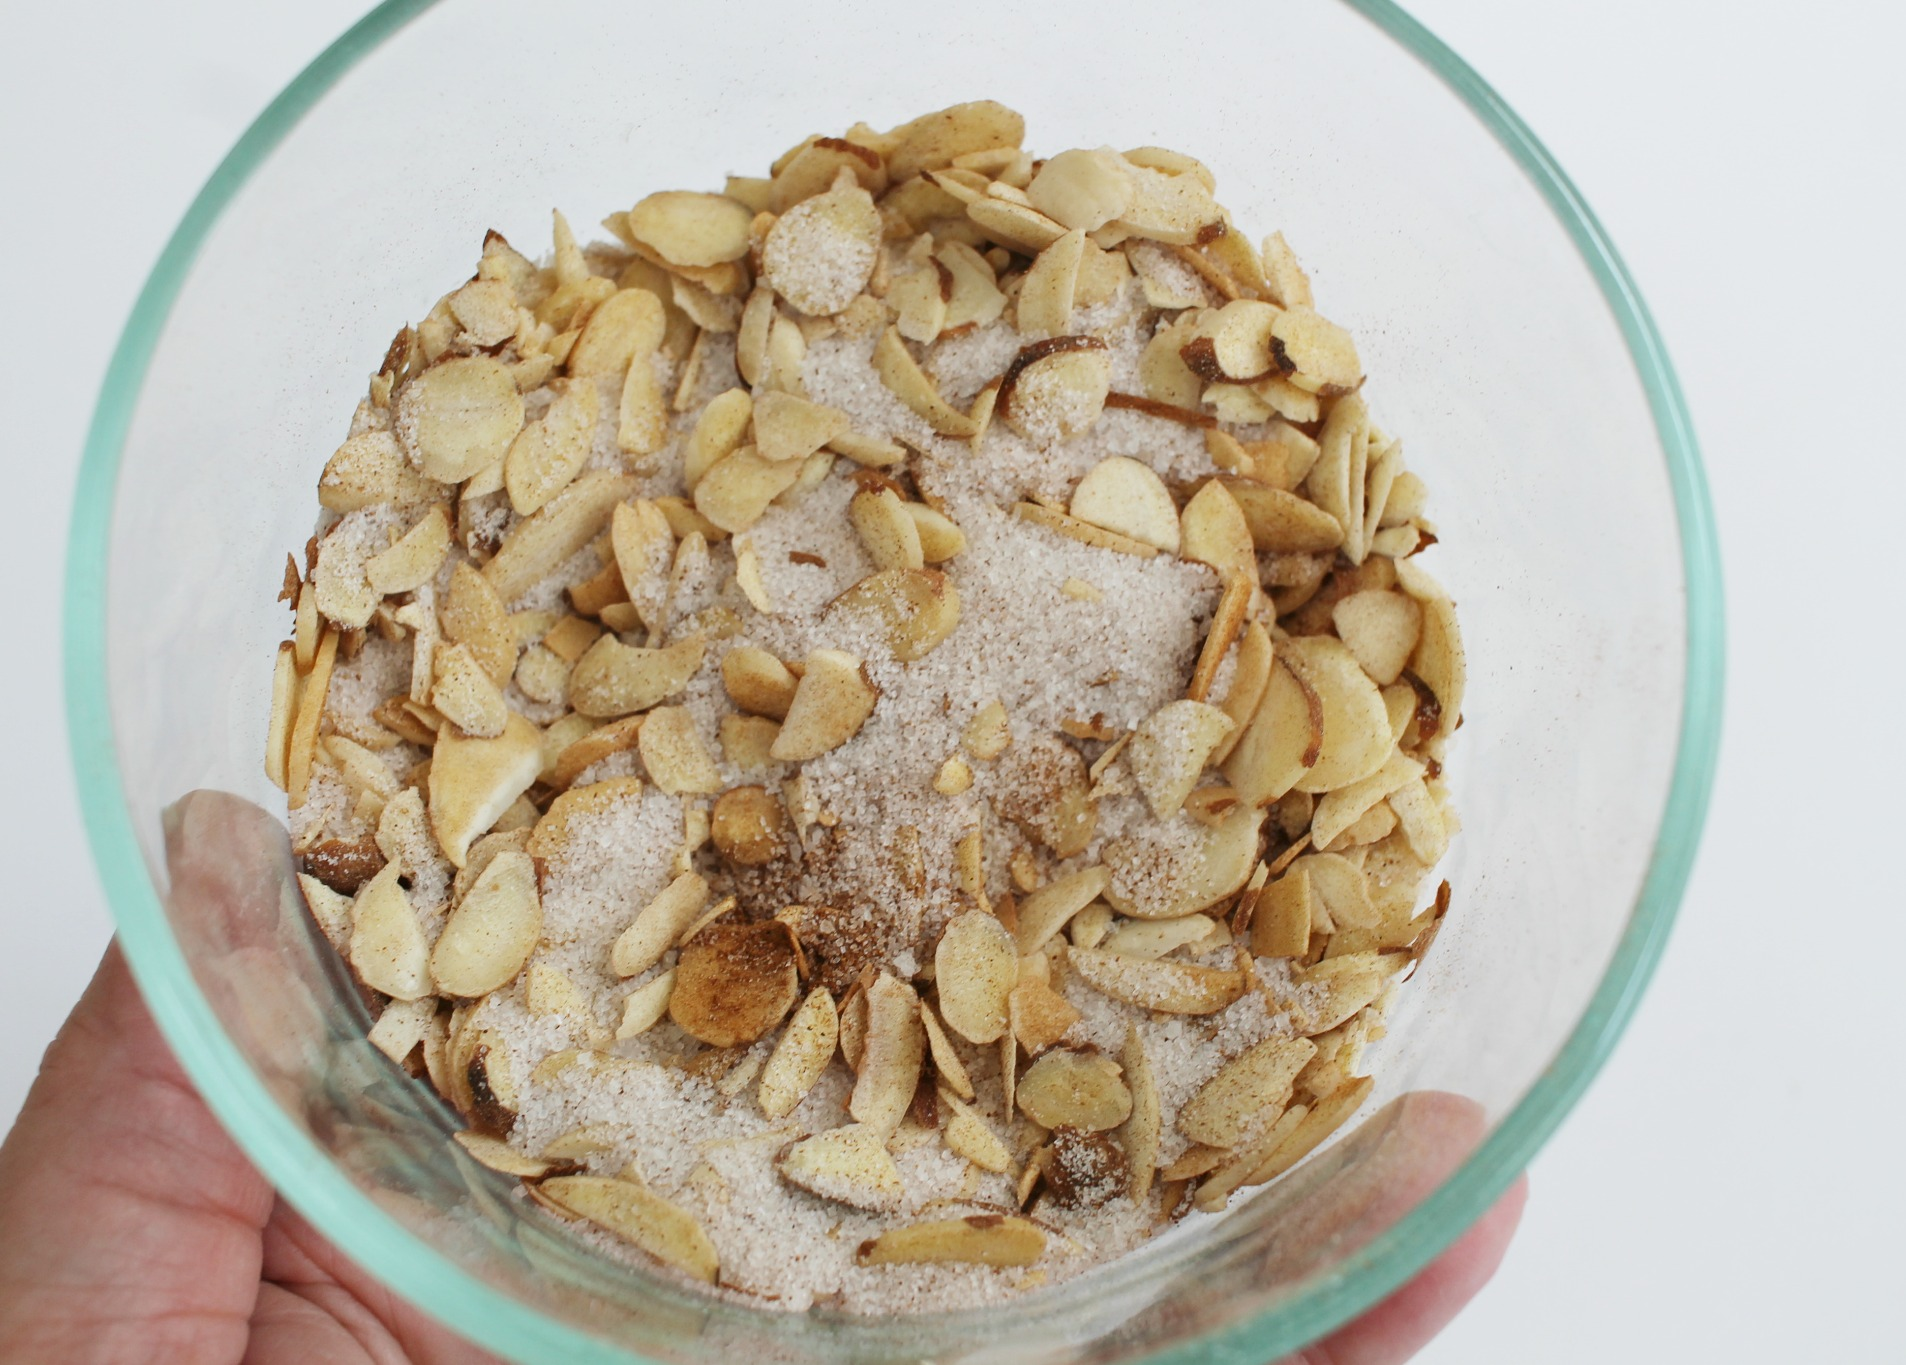 a glass bowl of sliced almonds mixed with cinnamon and sugar